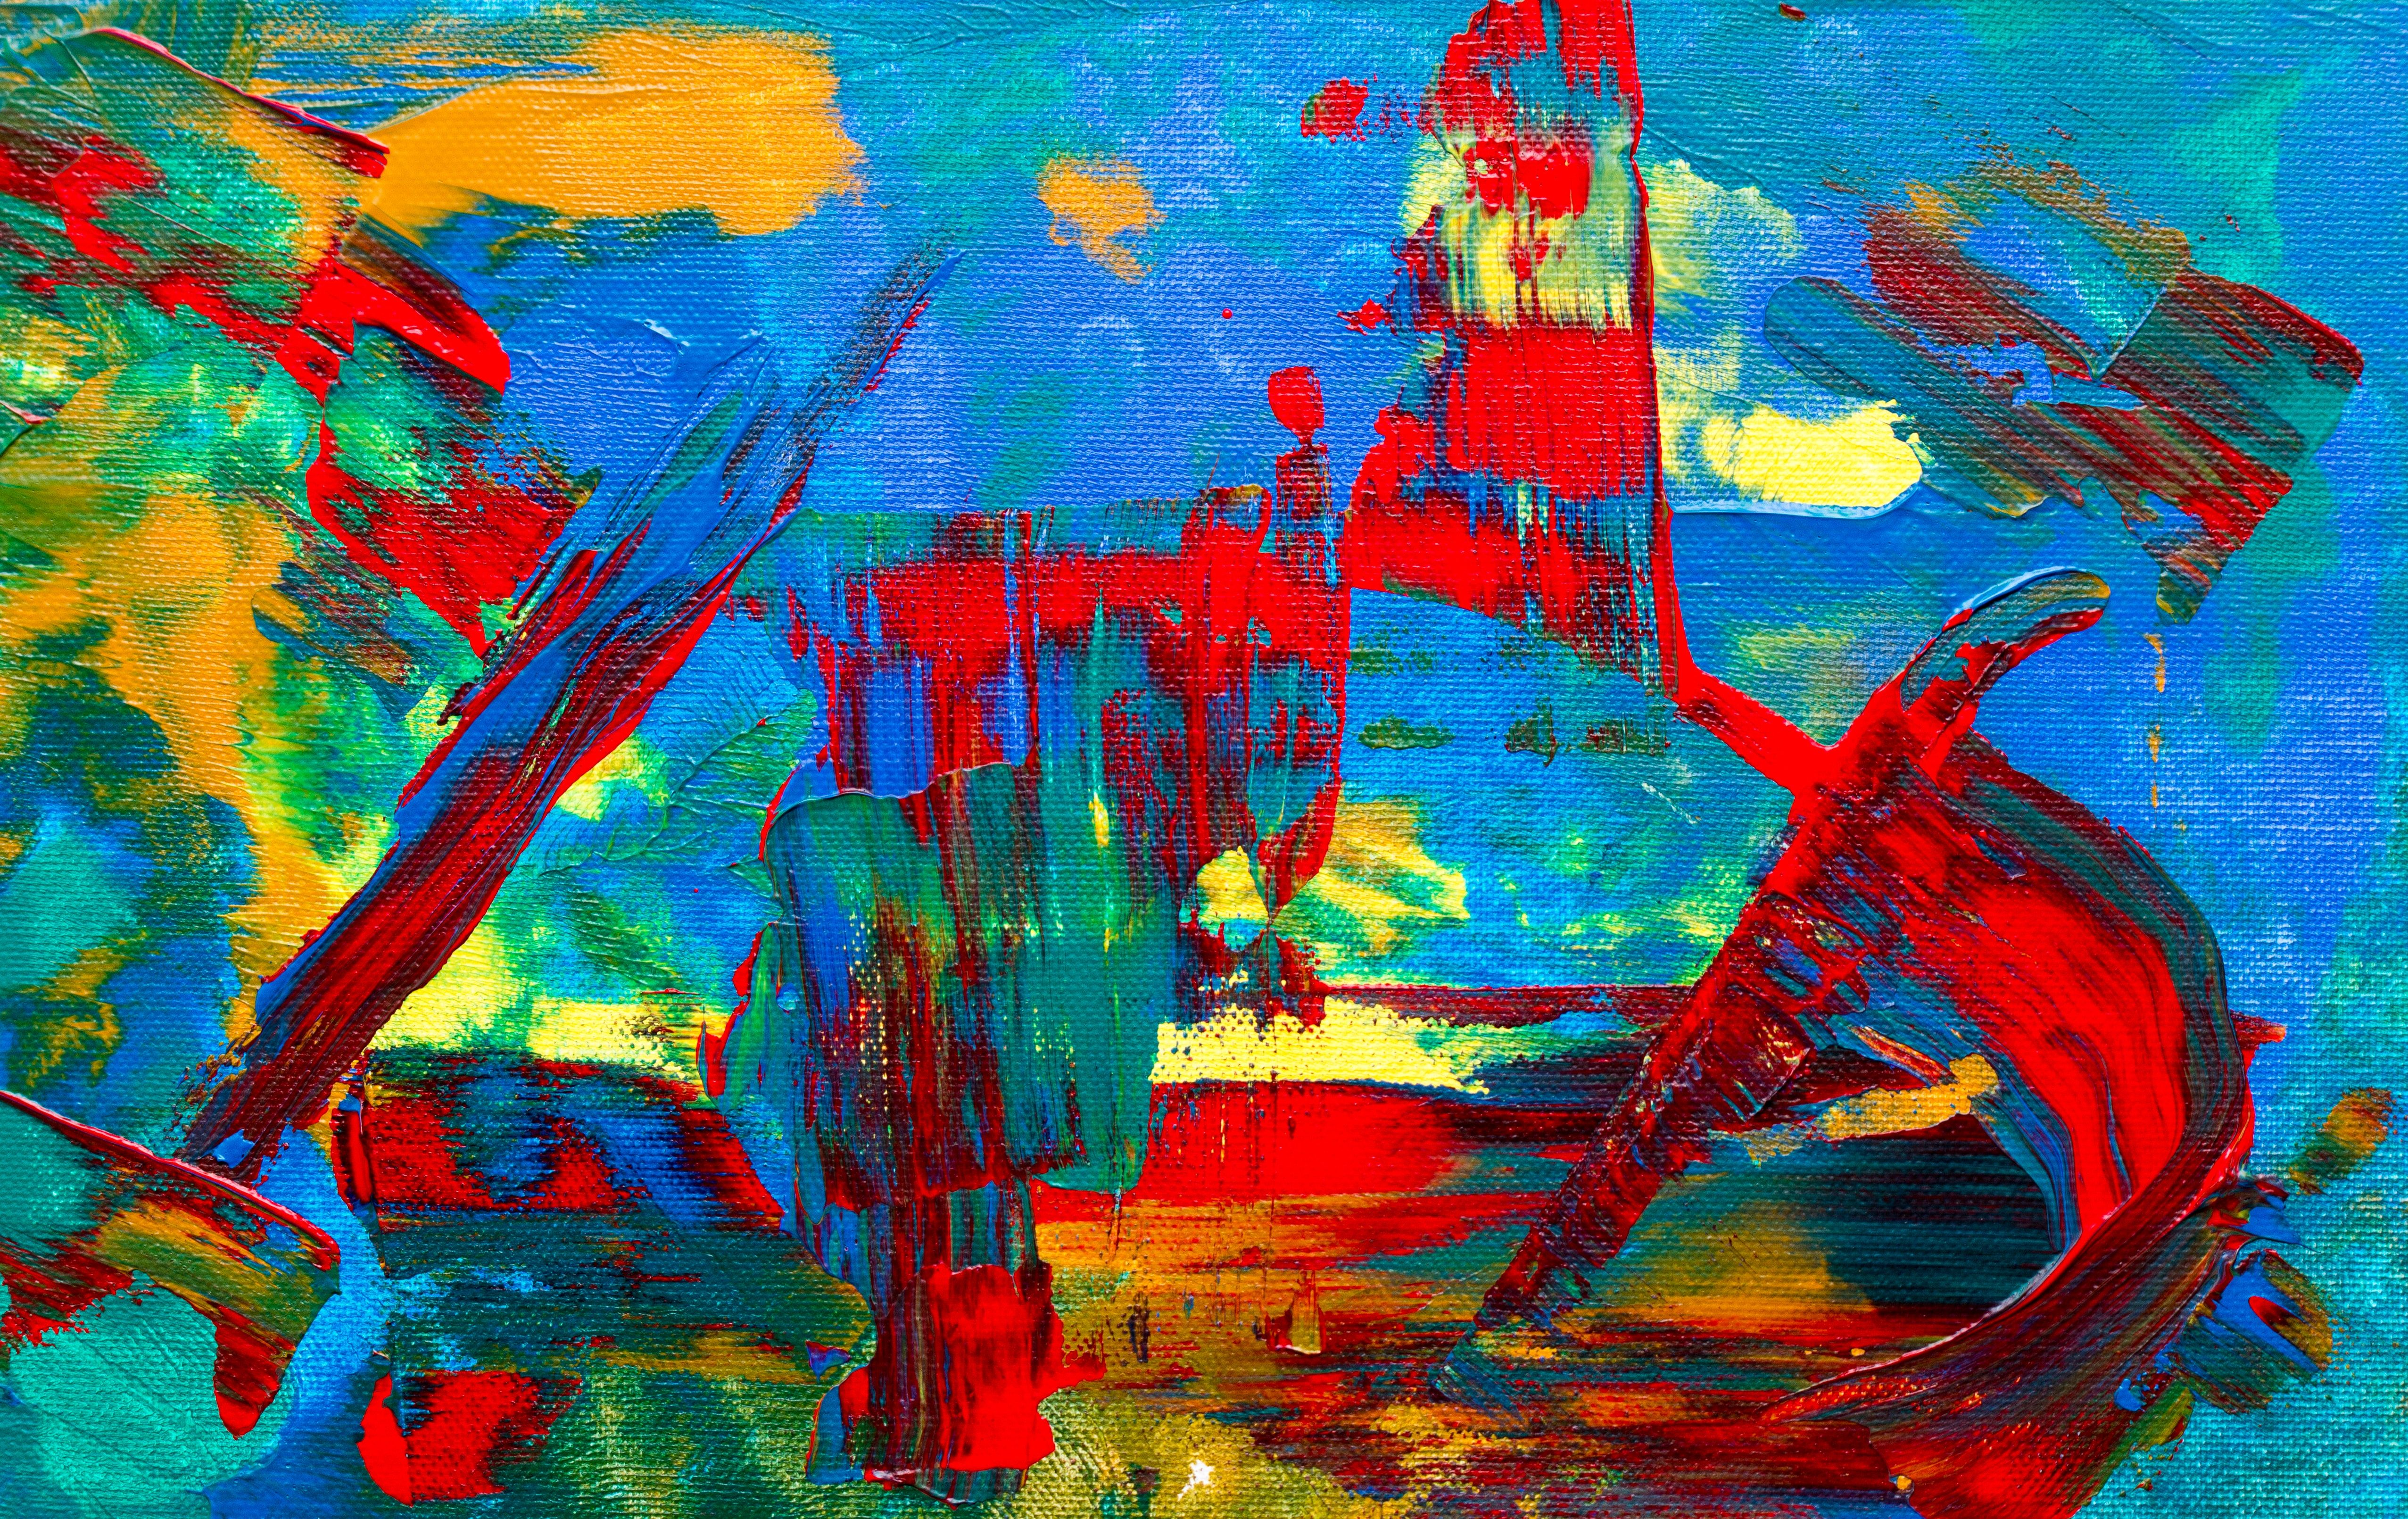 Teal Red And Blue Abstract Painting Blue Abstract Painting